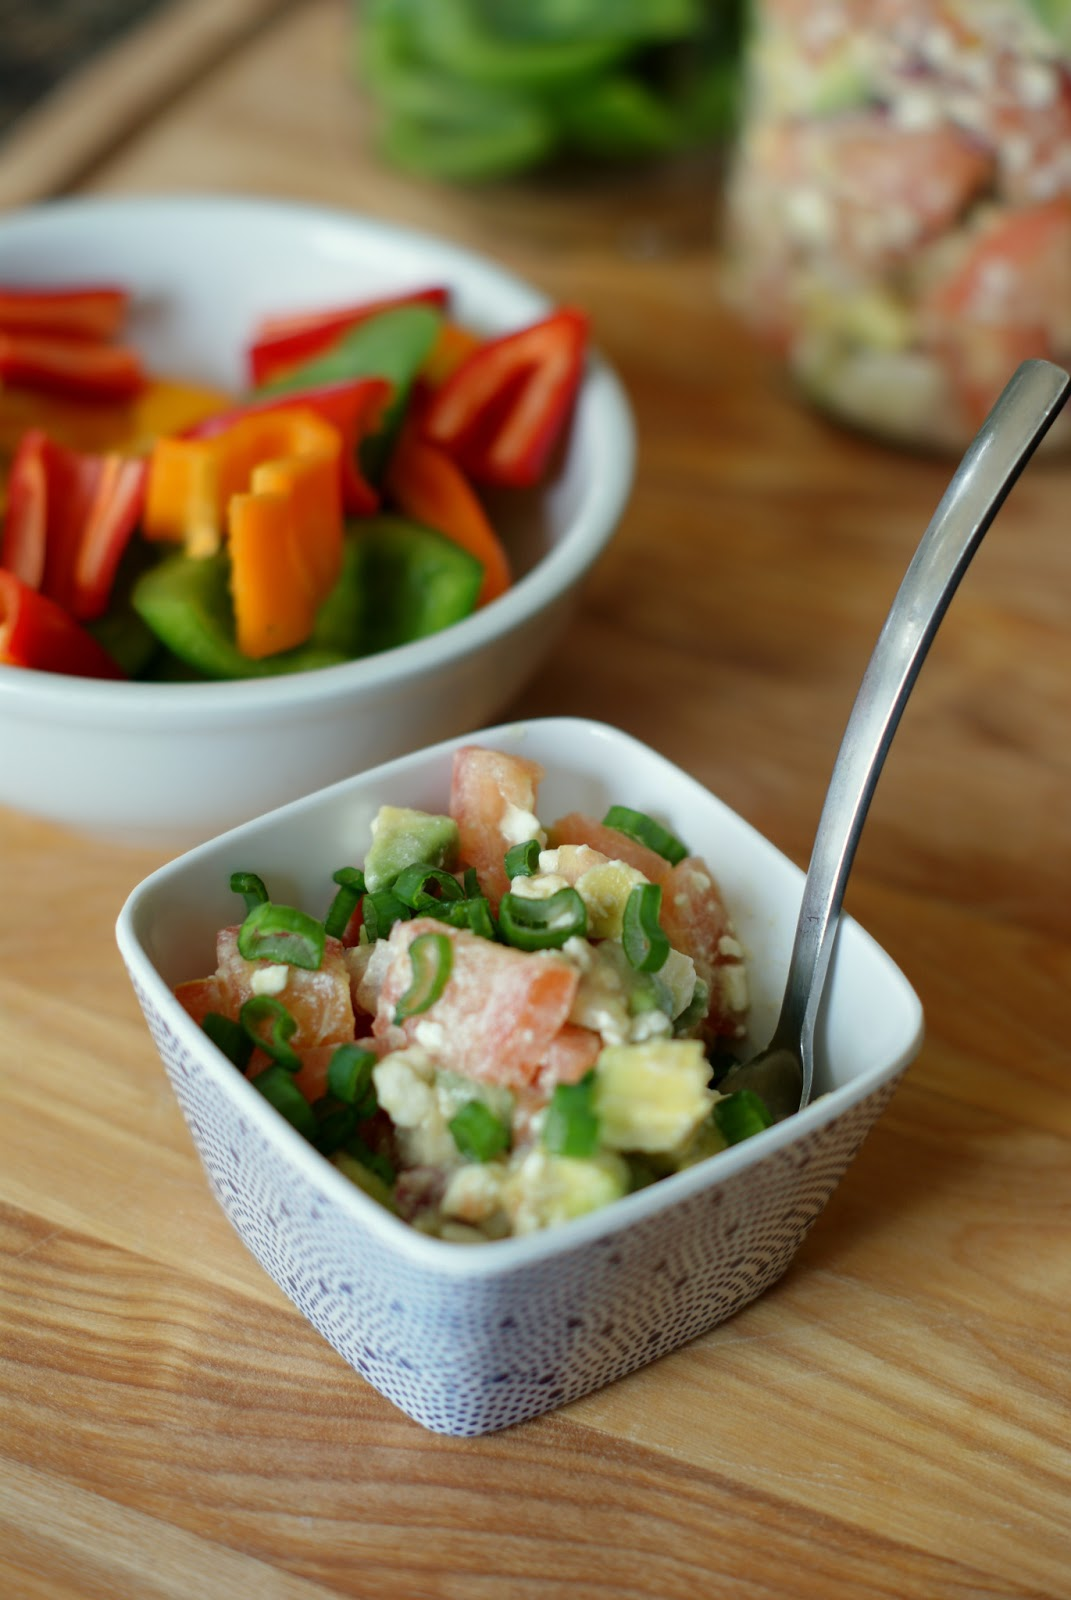 top with green onion slices serve with bell pepper slices